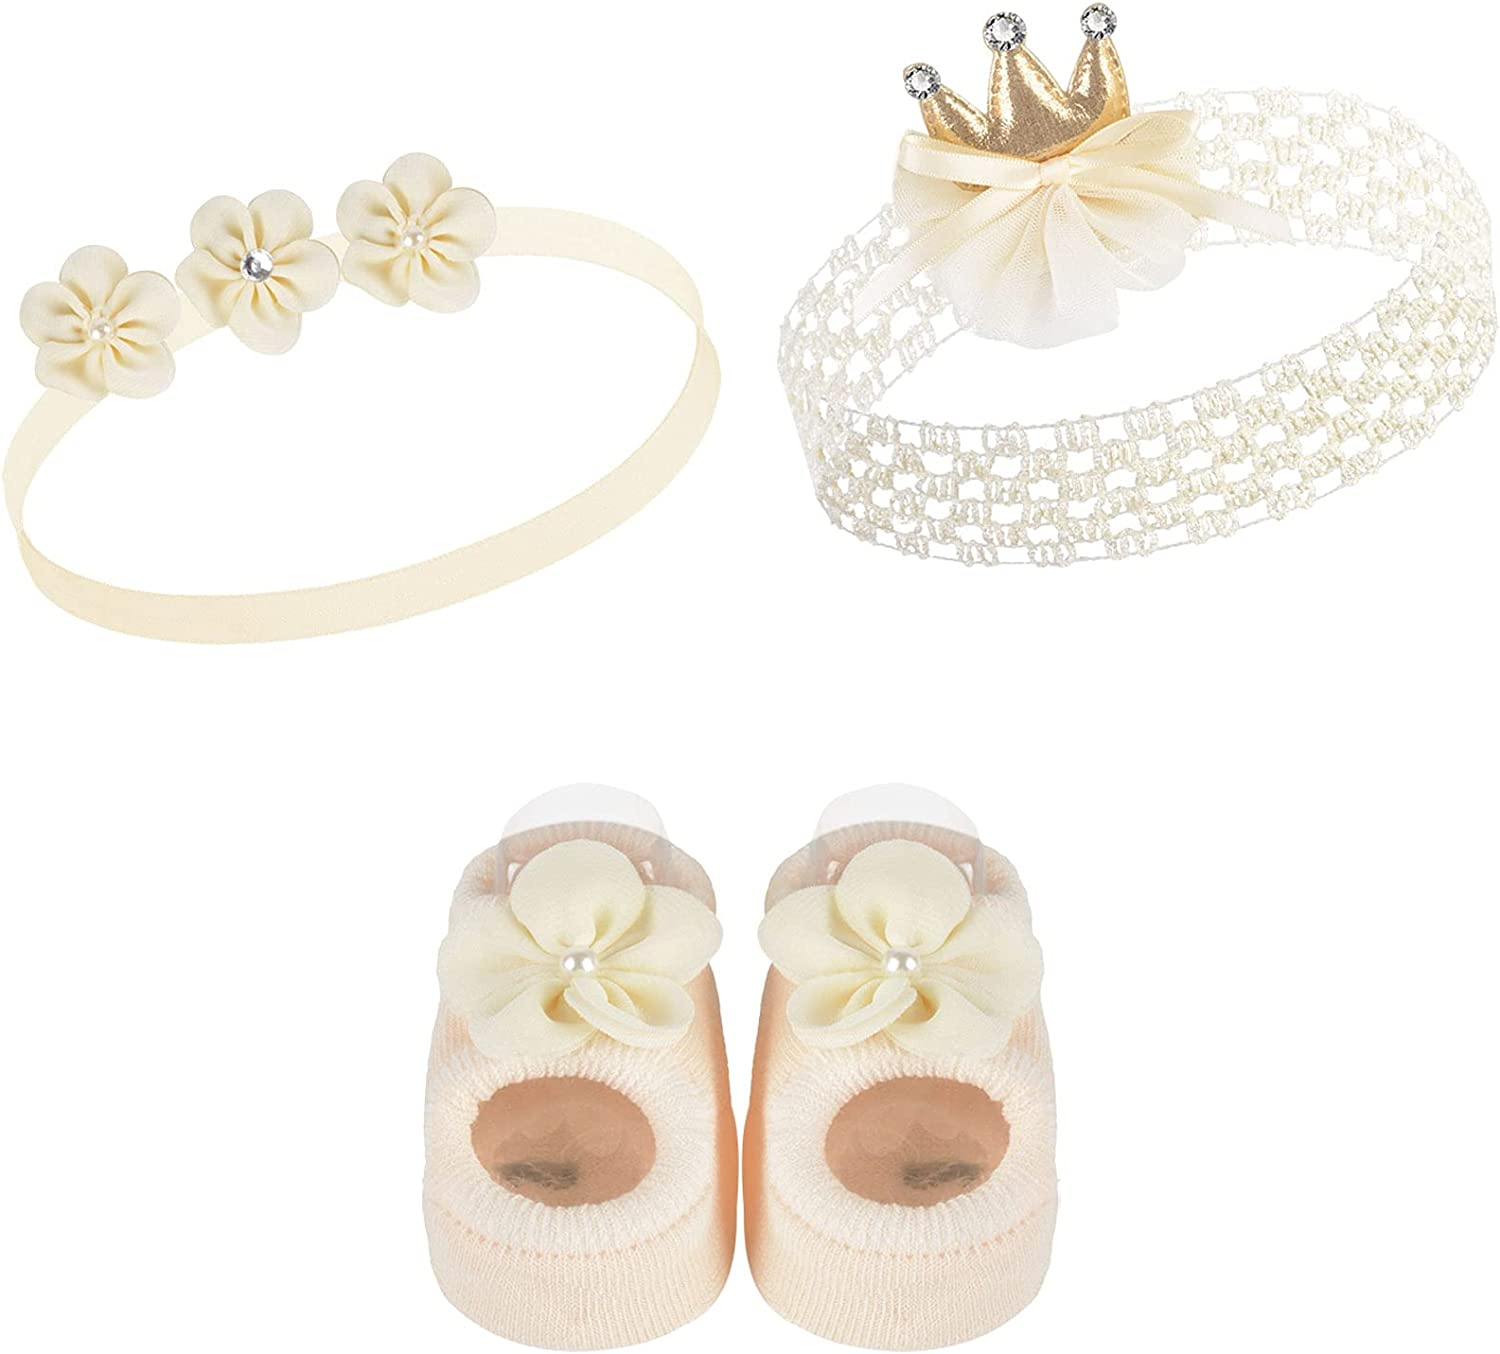 Baby Girl Headbands Socks Shoes Soft Sole Cute Hair Accessories Set for Newborn Baby Infant Toddlers Kids Baptism Christening